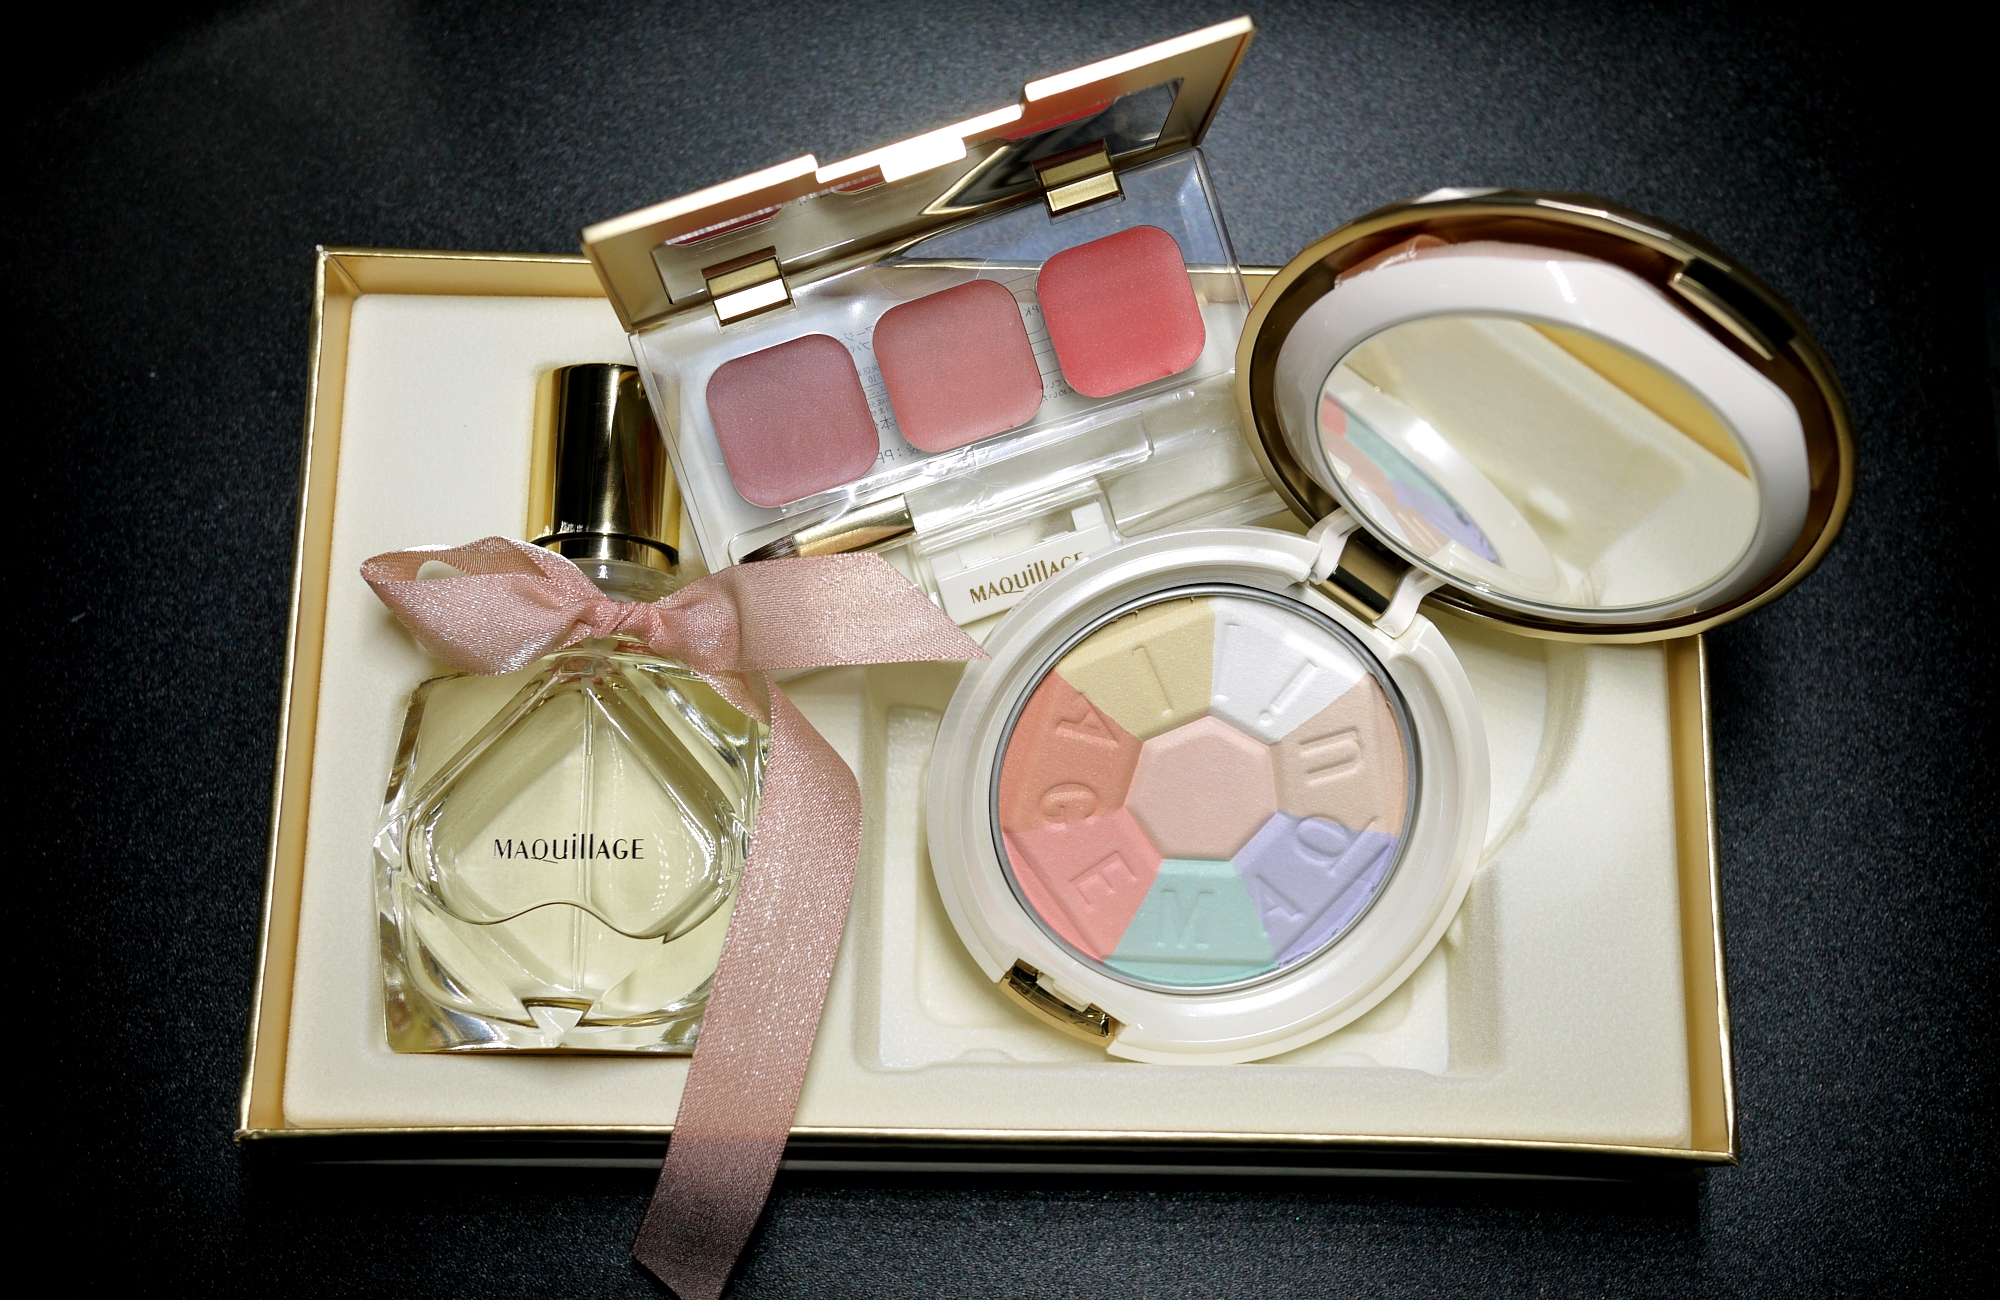 Shiseido Maquillage Aura Veil Collection Fragrance, True Rouge Lip Palette, Aura Veil Compact